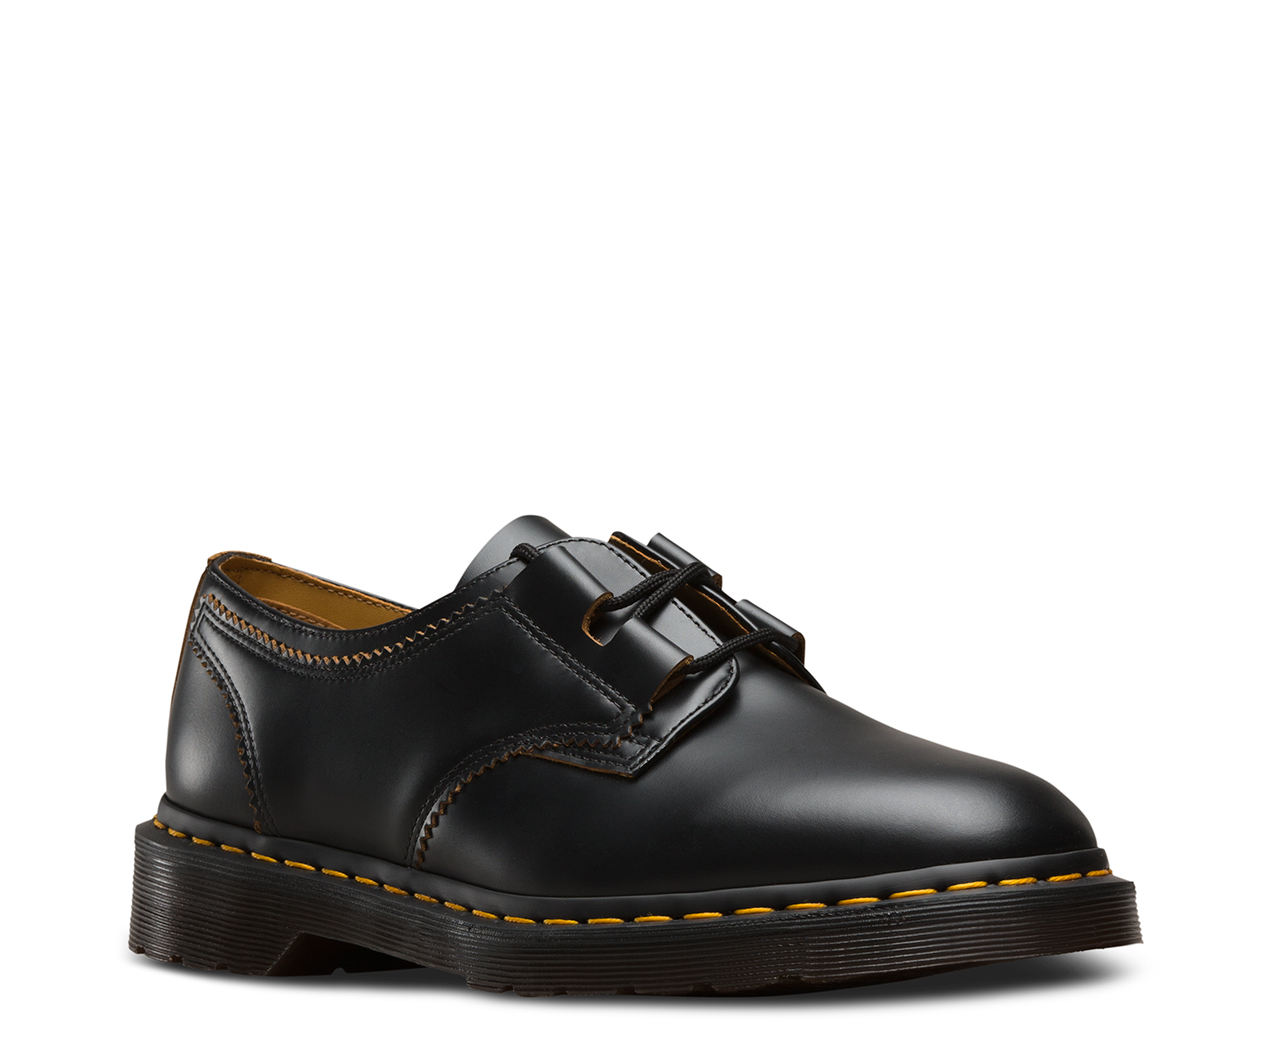 Womens Dr Marten Slip On Shoes